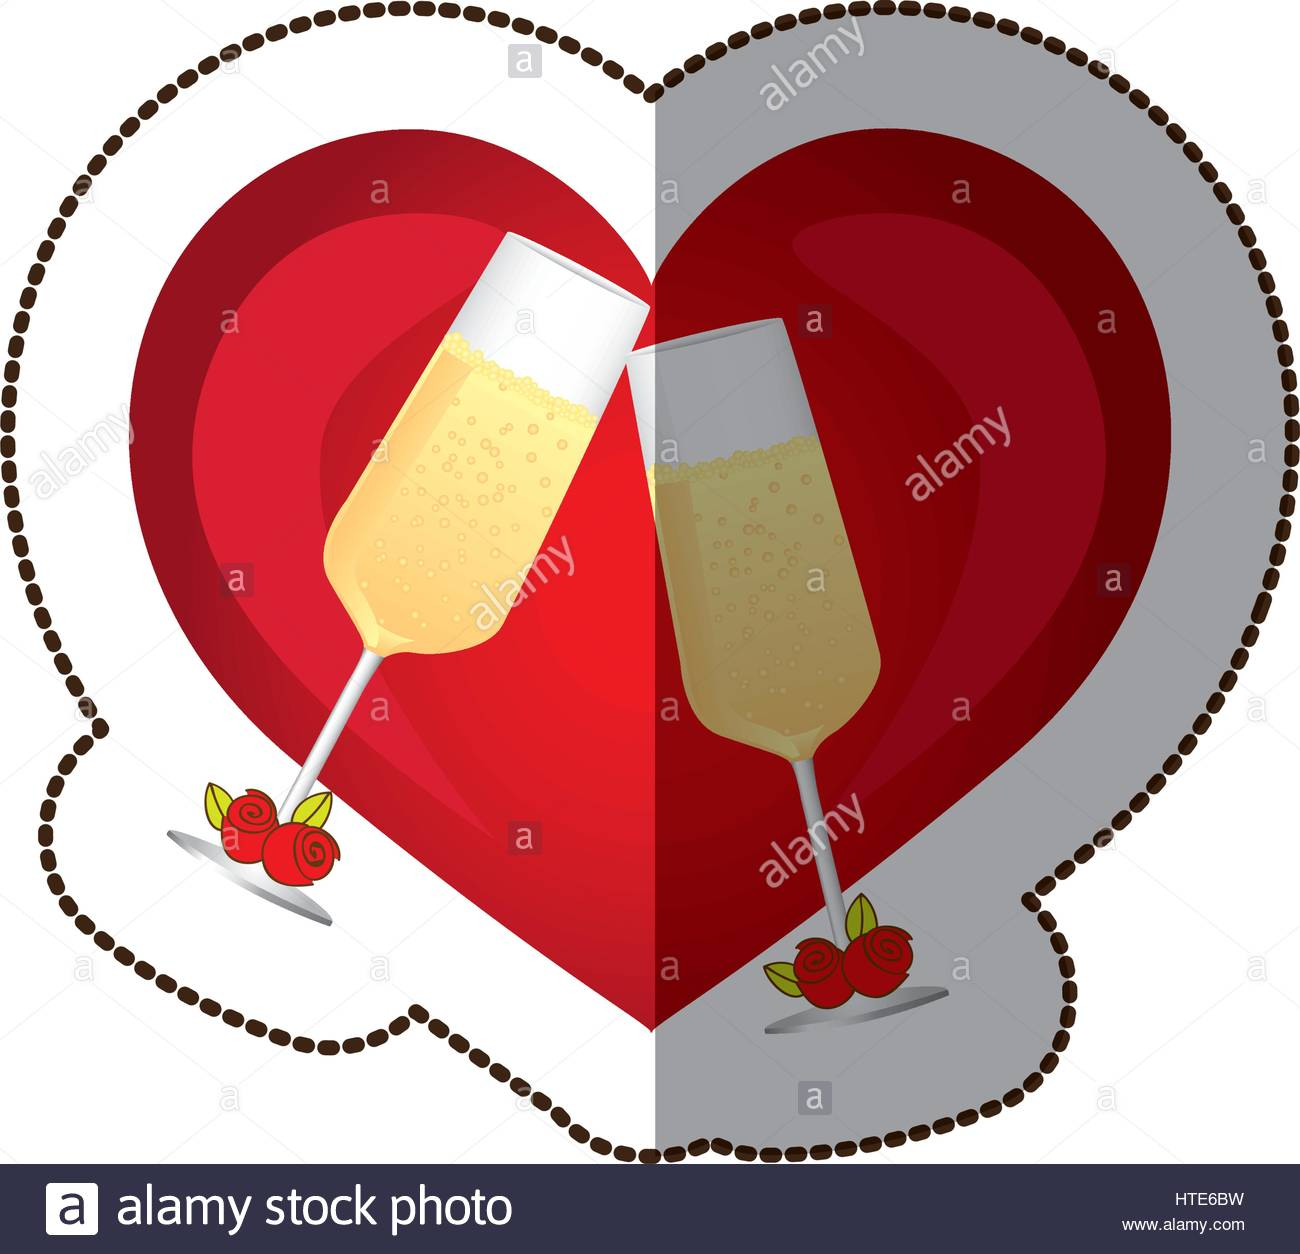 1300x1254 Sticker Colorful Silhouette Heart With Toast Champagne Glasses